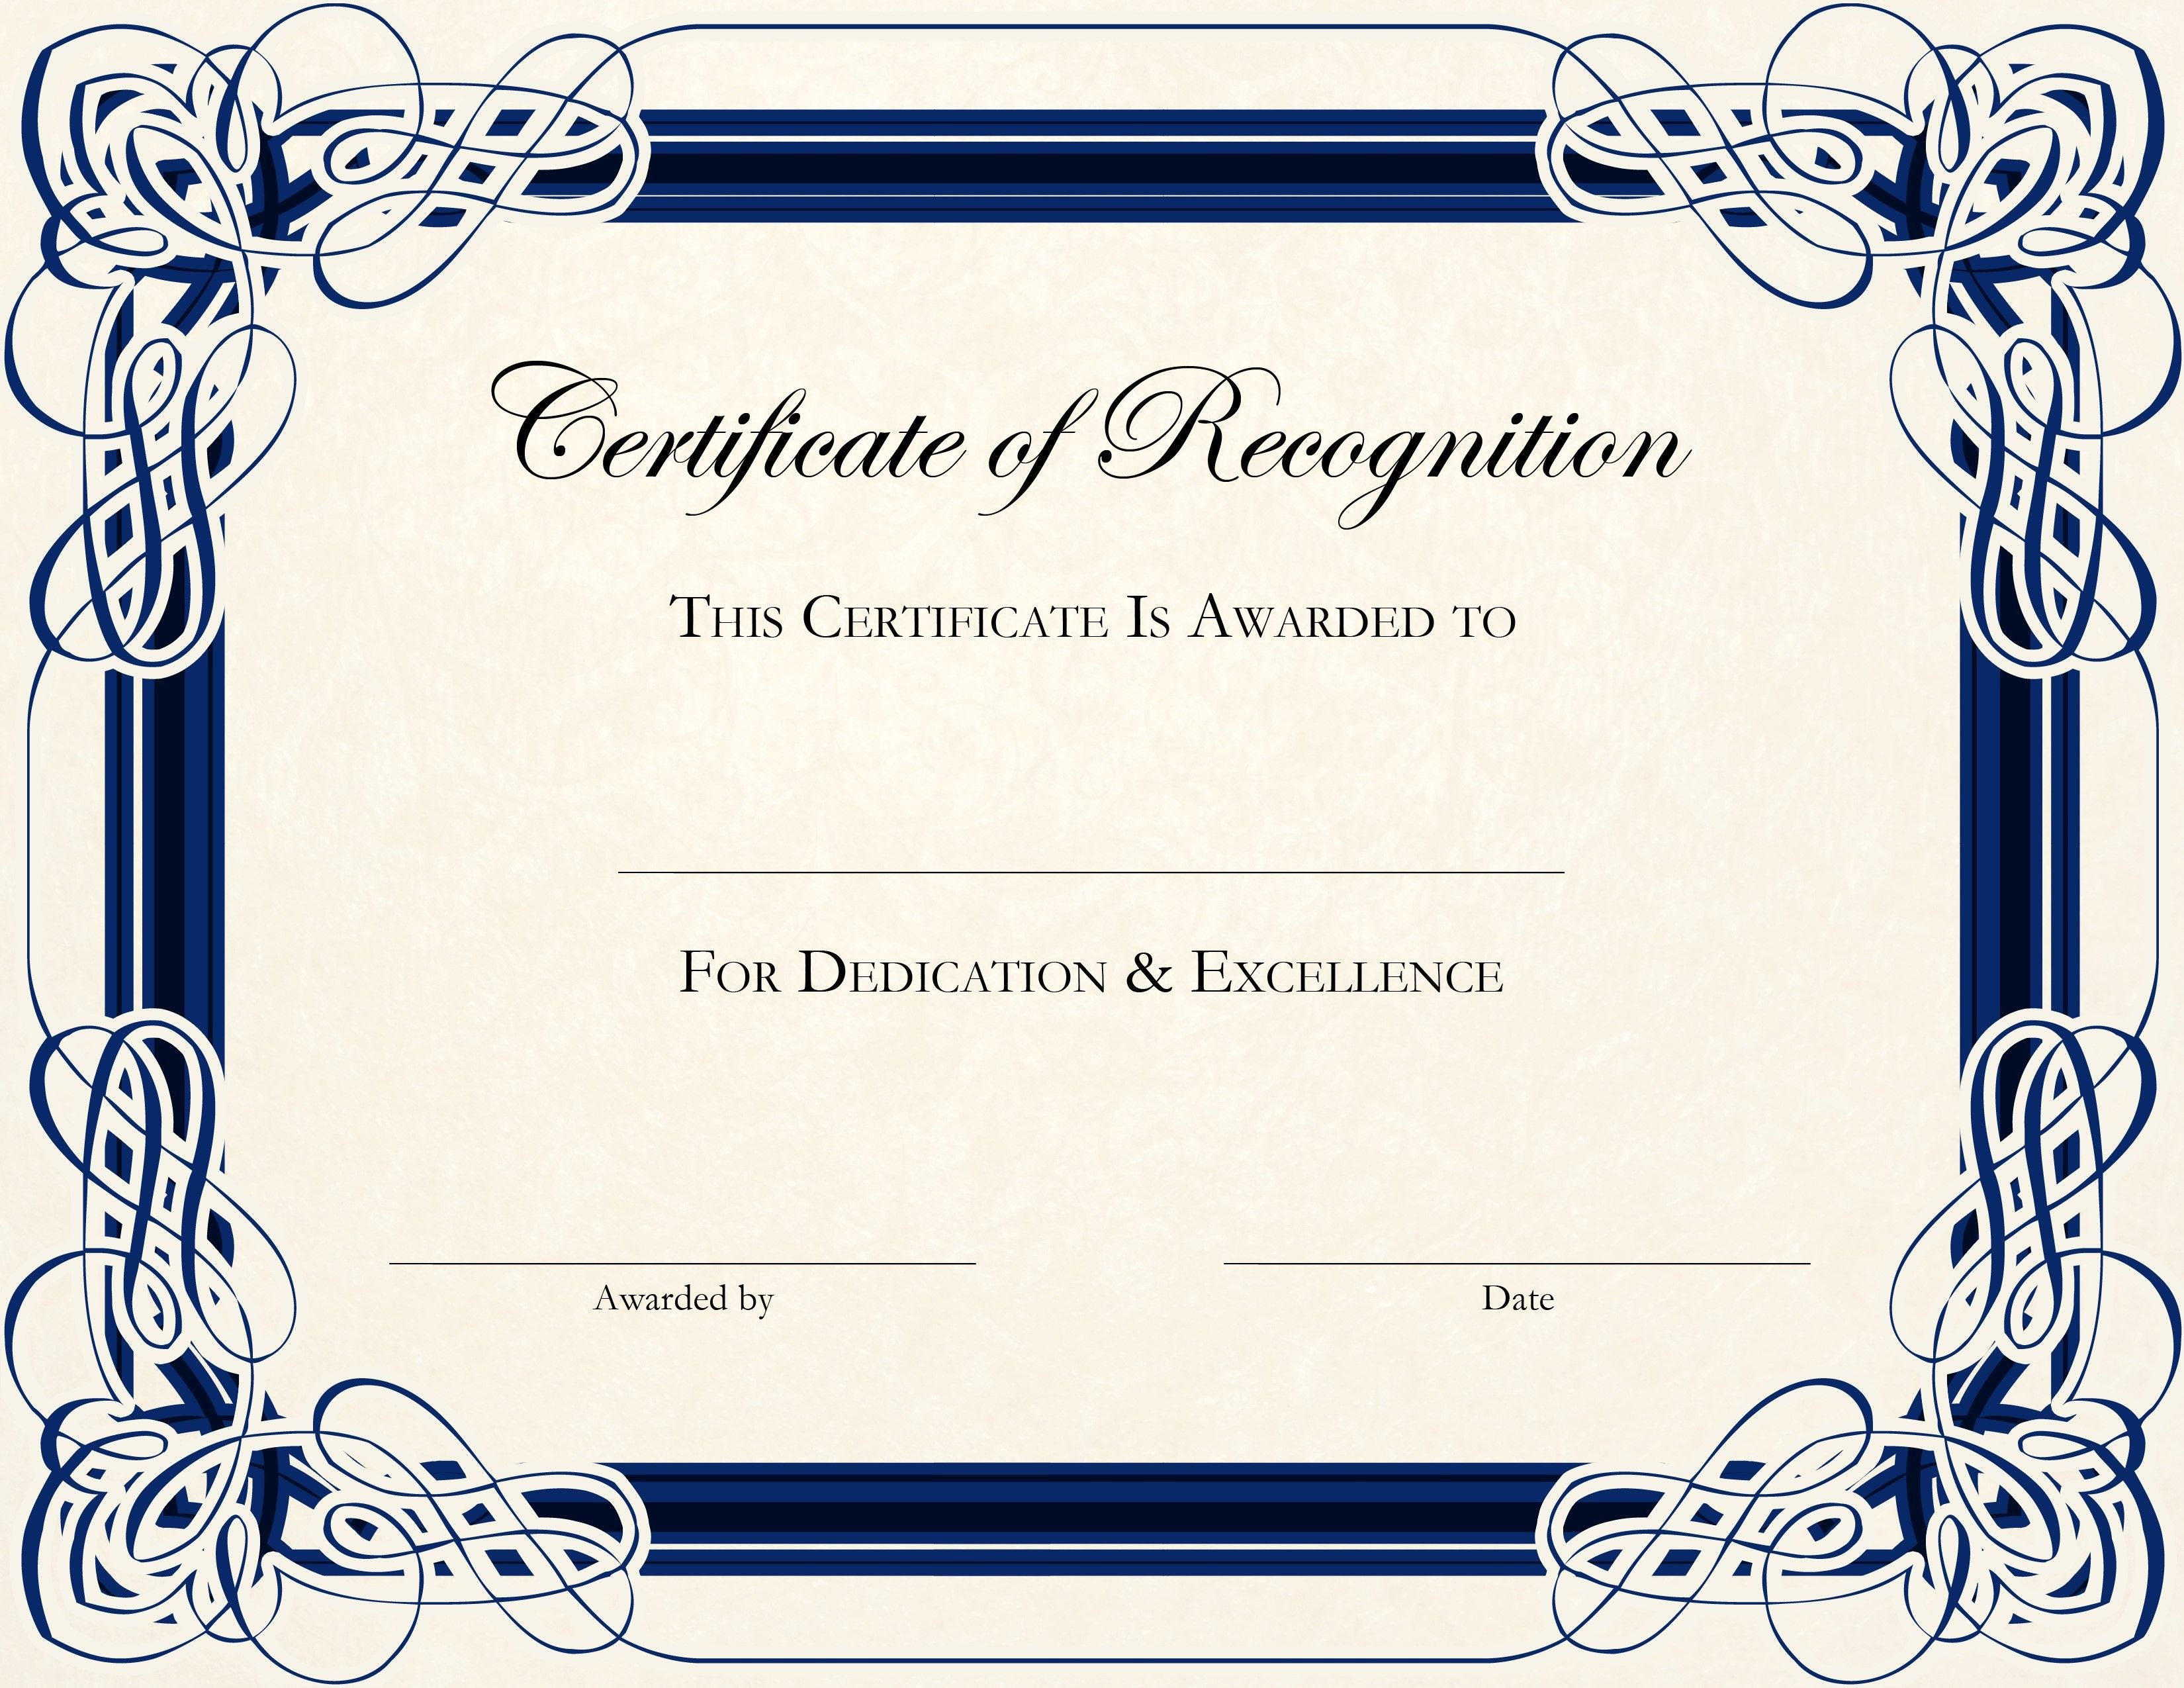 Free Printable Certificate Templates For Teachers  Besttemplate Regarding Track And Field Certificate Templates Free